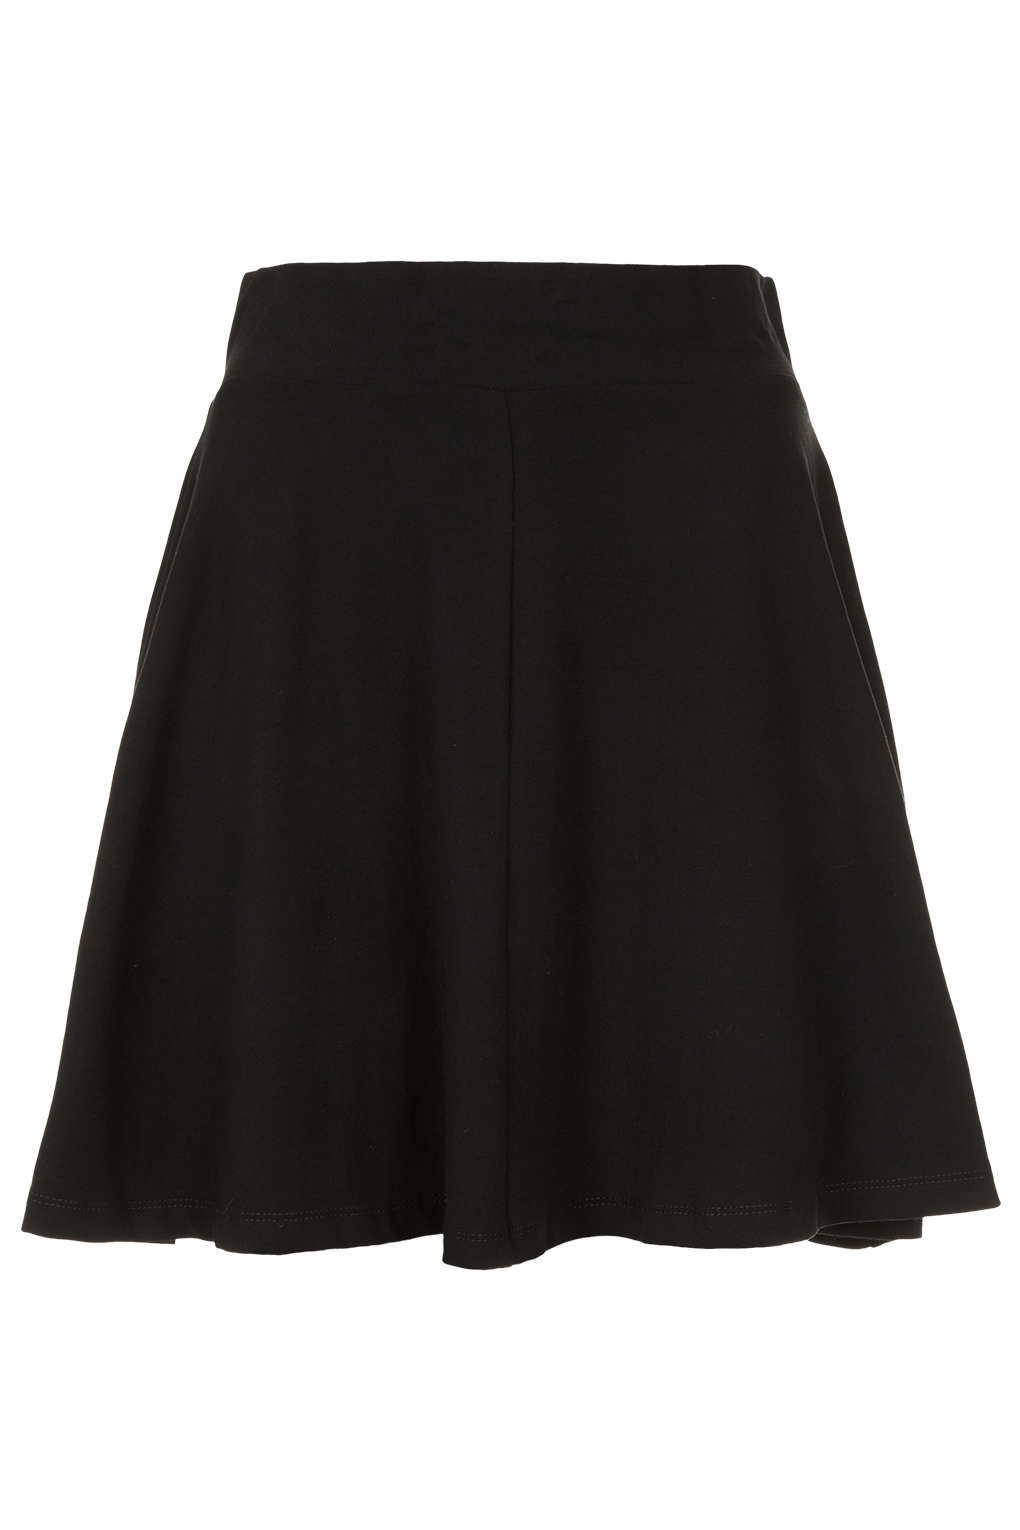 black high waist skater skirt skirts from topshop